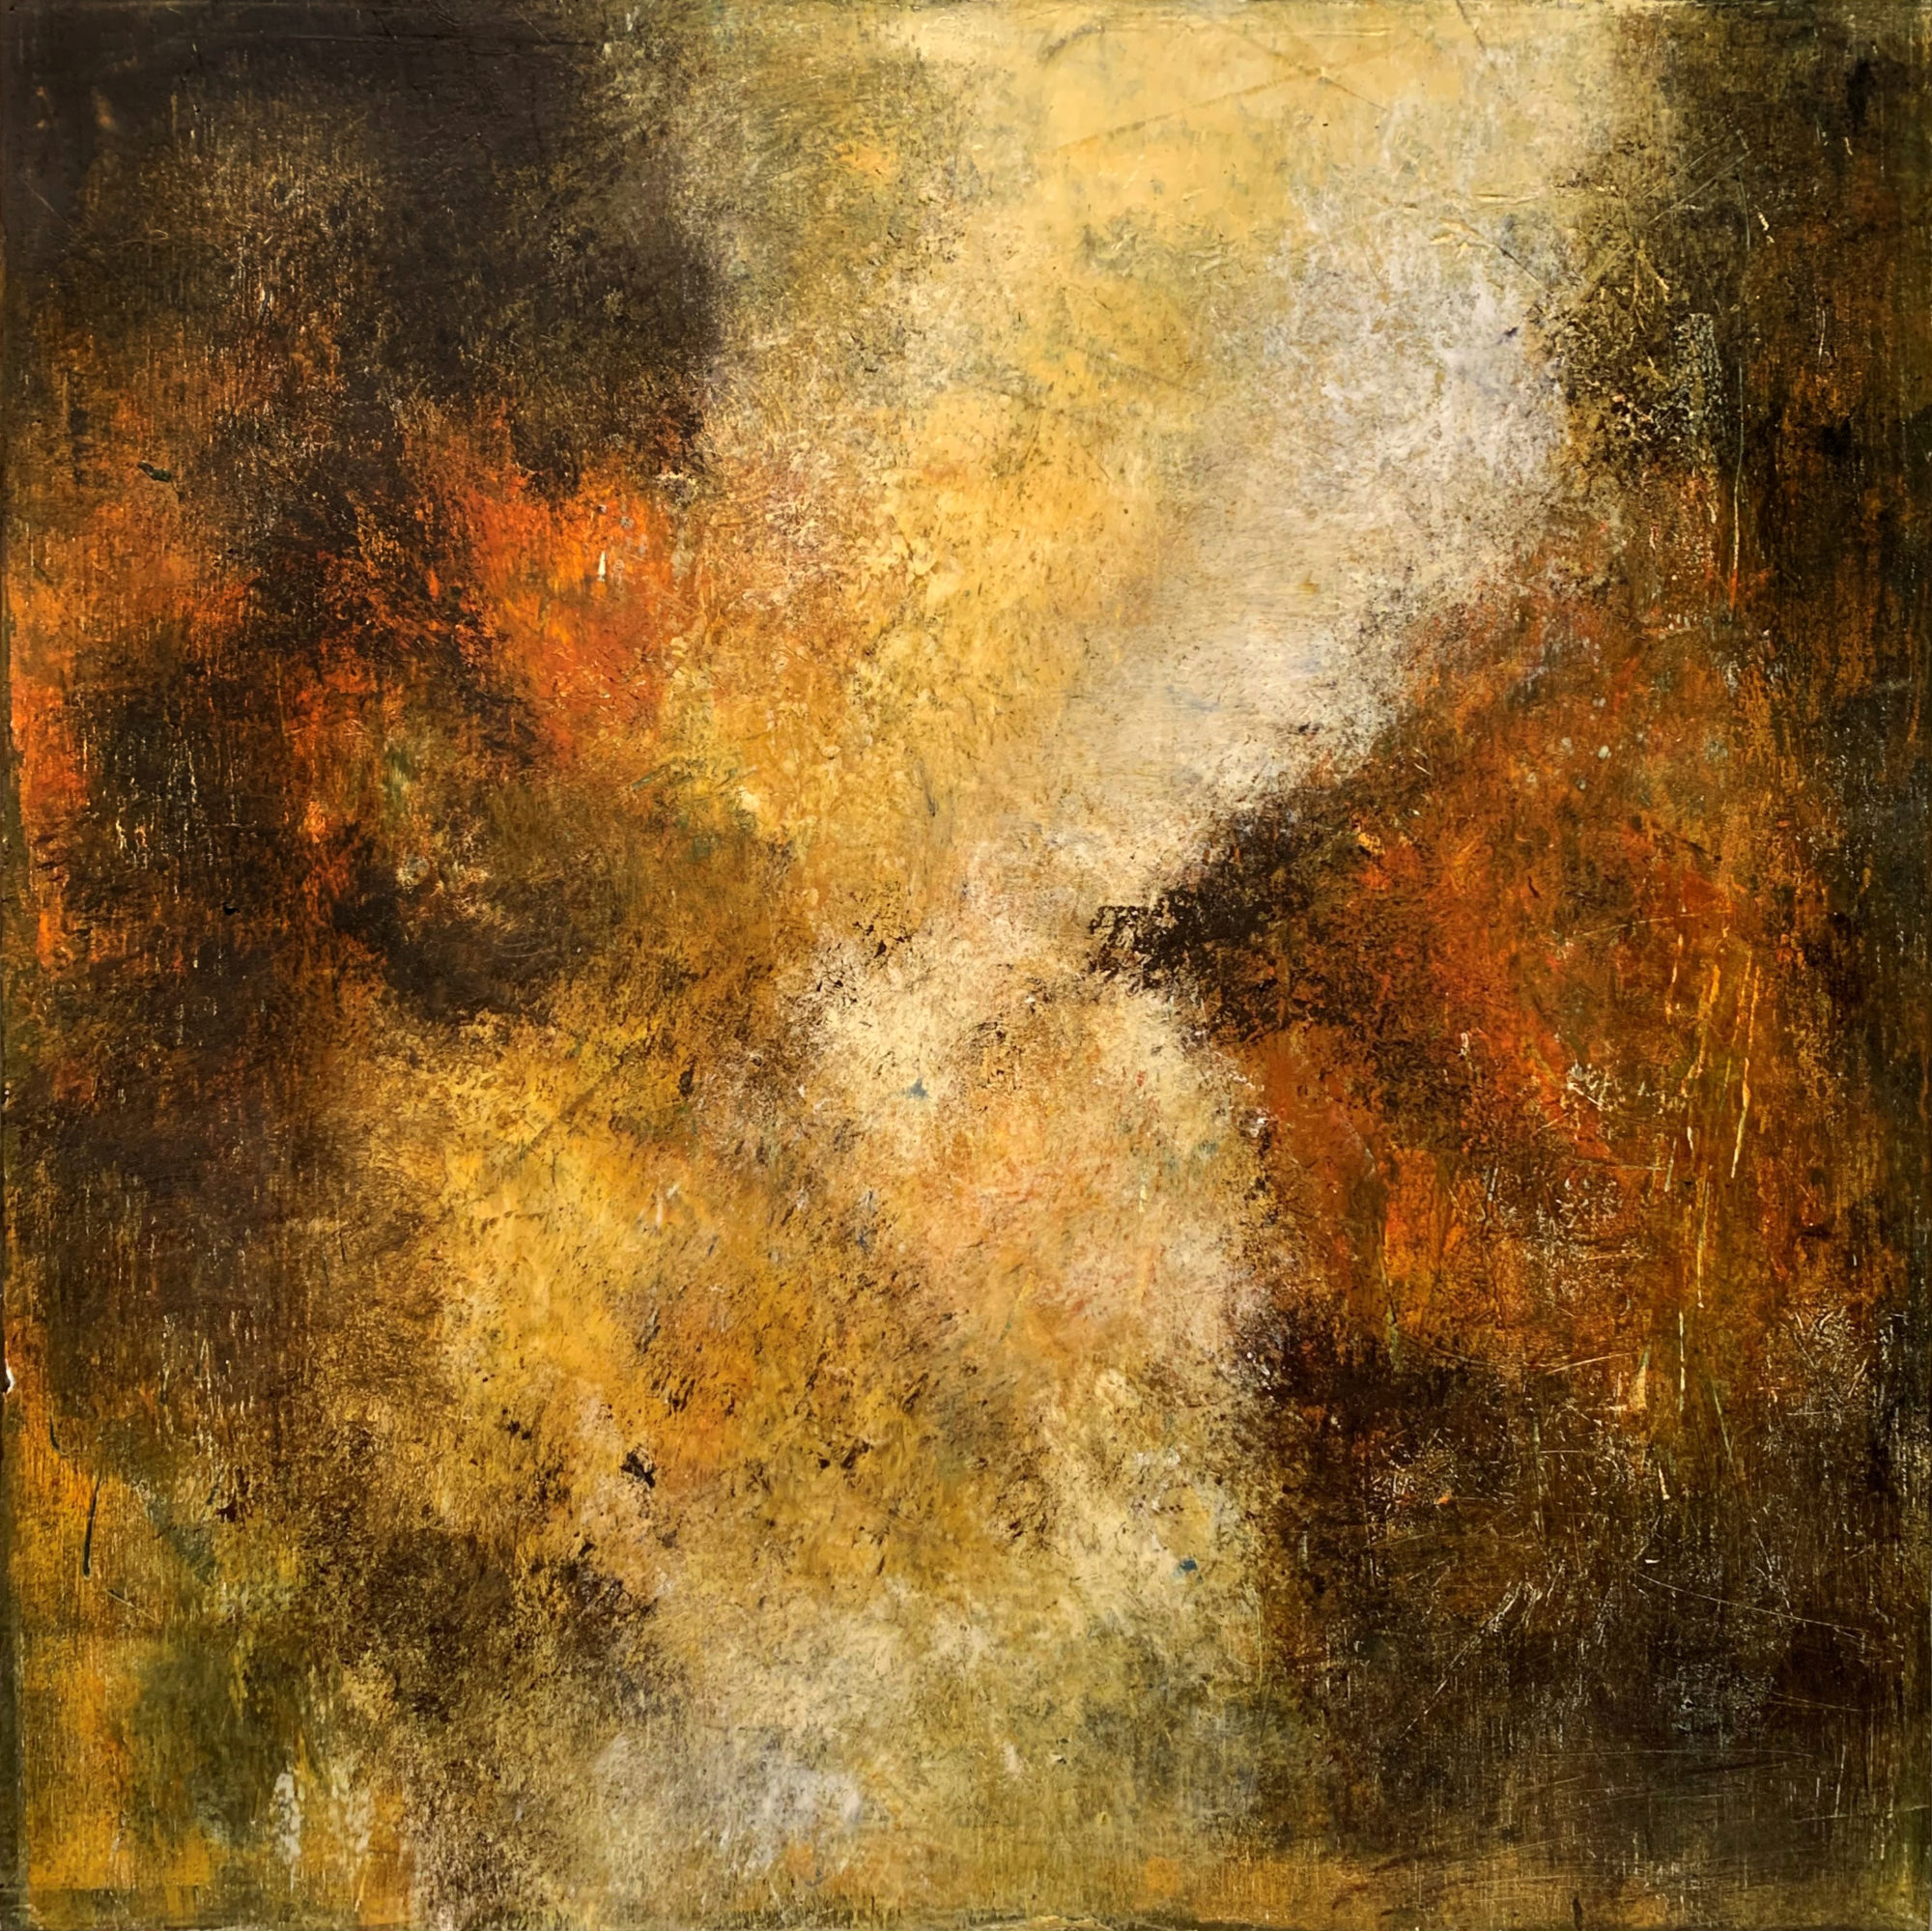 Mystic Musings IV 40 x 40 oil & cold wax